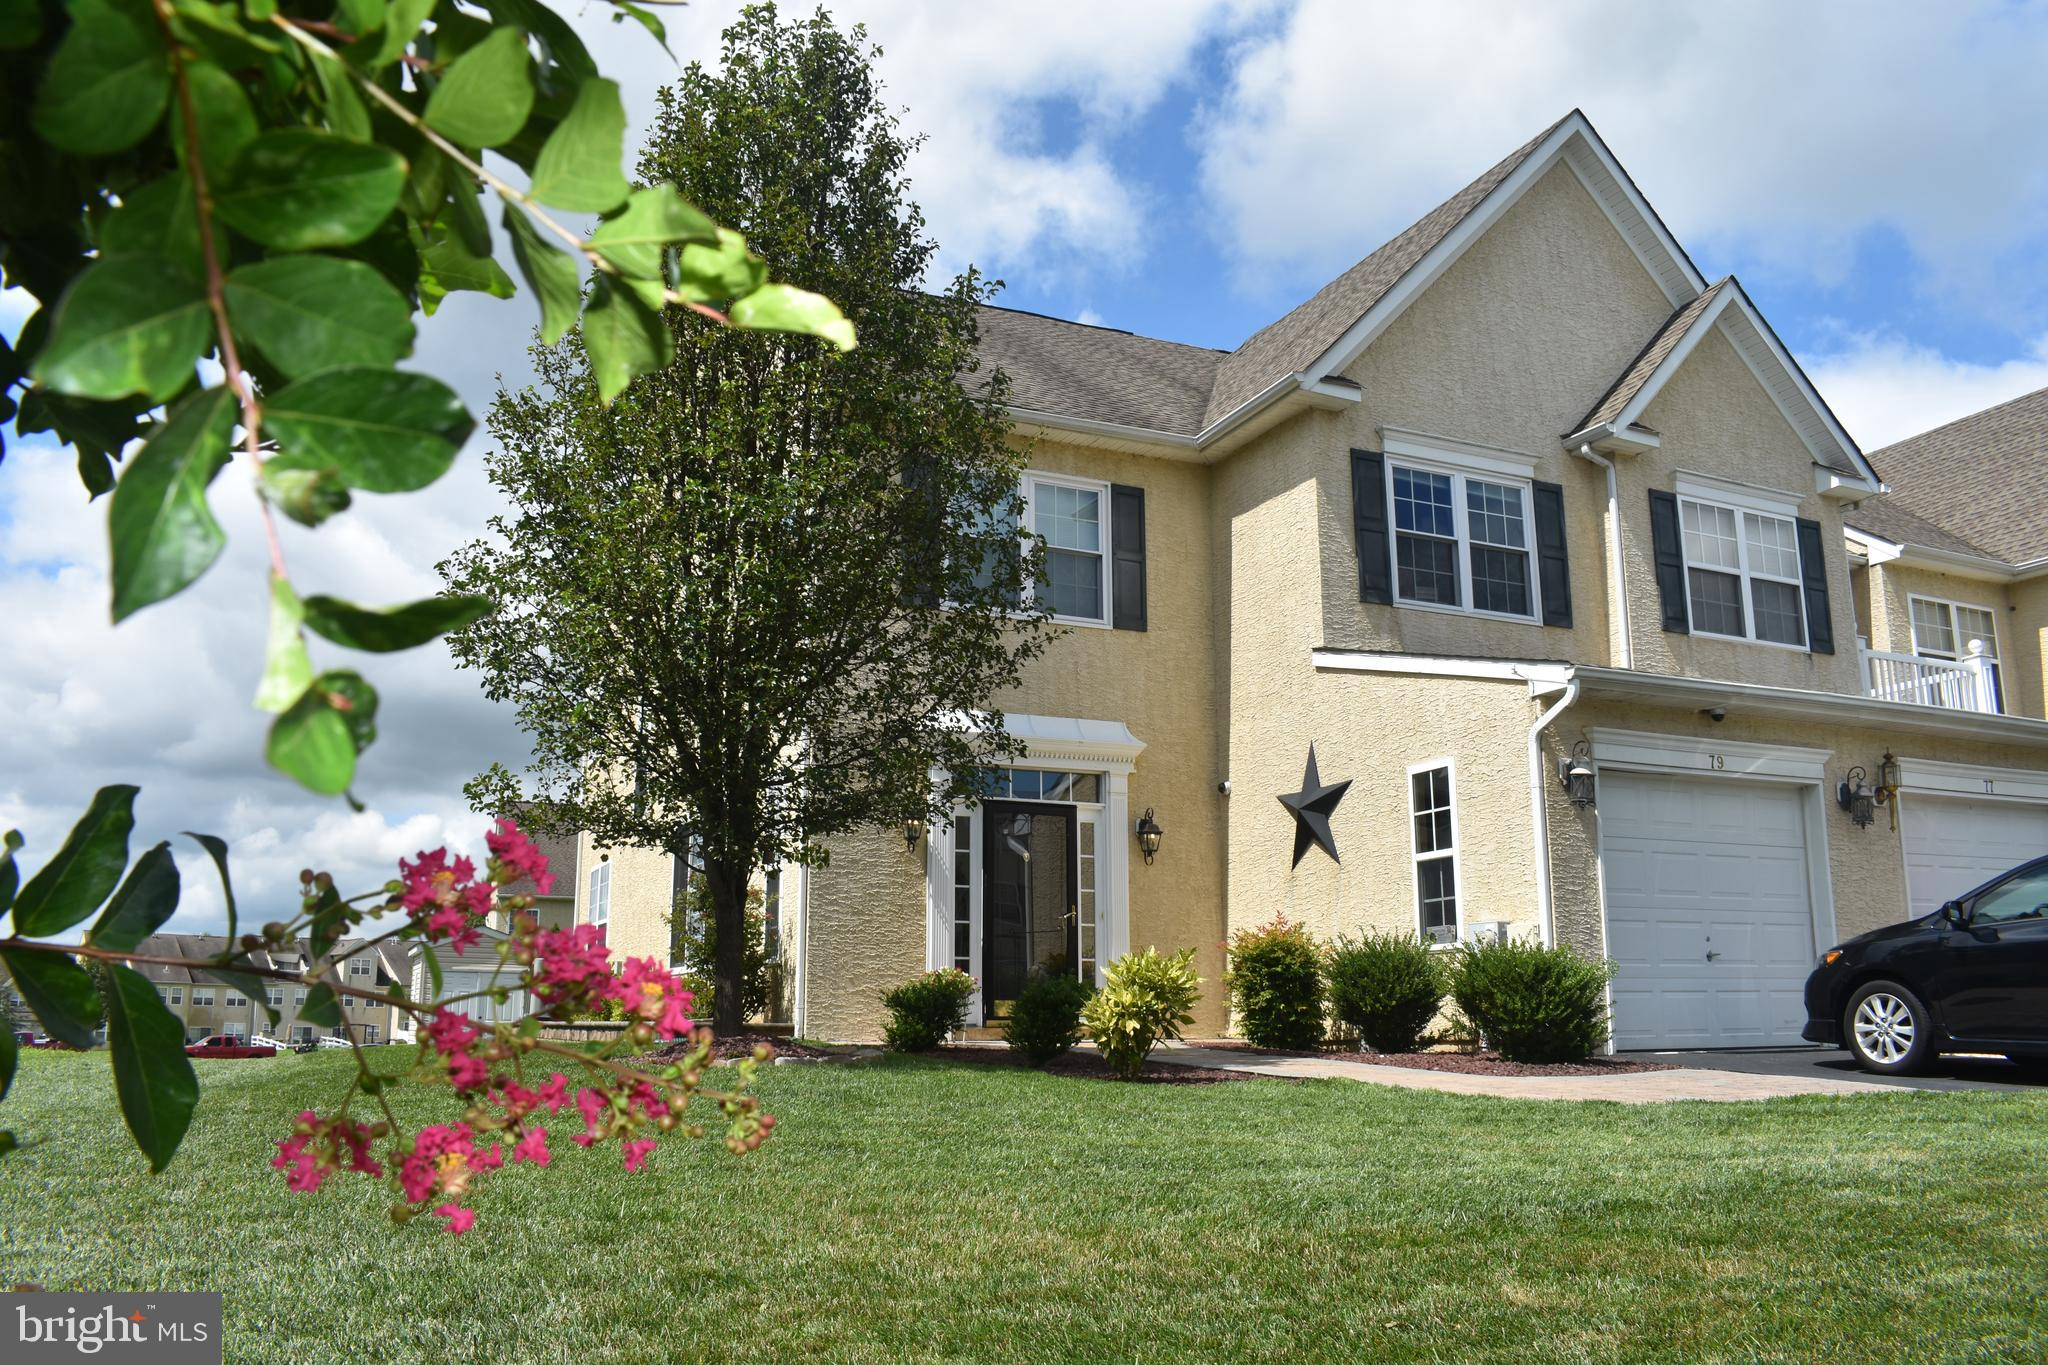 """Conveniently located three-bedroom end-unit townhome in the Appoquinimink School District all ready to move in. Beautiful paver walkway lead to the private entrance surrounded by a meticulously maintained landscaped  and hardscaped property with additional open space surrounding The gracious foyer with coat closet and half bath leads into you into the main level offers rich wood flooring, oversized living room window to bring in natural lighting. A sun-filled picture window fills the living room with natural light creating a welcoming atmosphere. The gorgeous kitchen features stainless steel appliances plenty of 42-inch cabinetry, granite countertops and backsplash. Enjoy casual meals at the breakfast bar! The kitchen overlooks the family room complete with a French glass door to the paver patio. Entertain guests in the formal dining room surrounded by large windows. Previous owners have converted garage into an especially useful space, ideal for an office, playroom, bonus room, it is complete with built in cabinetry, carpet and ceiling fan.   A convenient laundry room off the kitchen completes the main level.   Washer and Dryer and Refrigerator  and Aquasana Rhino whole house filtration system are included in the sale.  Hardwood treads lead up to the second level loft area.  The master suite draws you in with a wall of sunny windows. This retreat offers a large walk-in closet featuring """"Closet by Design"""" solution , a soaking tub, separate shower and a double vanity. Two additional bedrooms (one with another nice walk-in closet), share a nicely appointed hall bathroom. A beautiful paver stone patio provides a great outdoor entertaining space. Relax with friends while surrounded by open area and beautiful landscaping! Outdoor storage shed provides another great storage potential. Great neighborhood conveniently located for commuting, shopping or entertainment.  Owner has just completed many refreshes on the home including painting, carpet cleaning as well as some rec"""